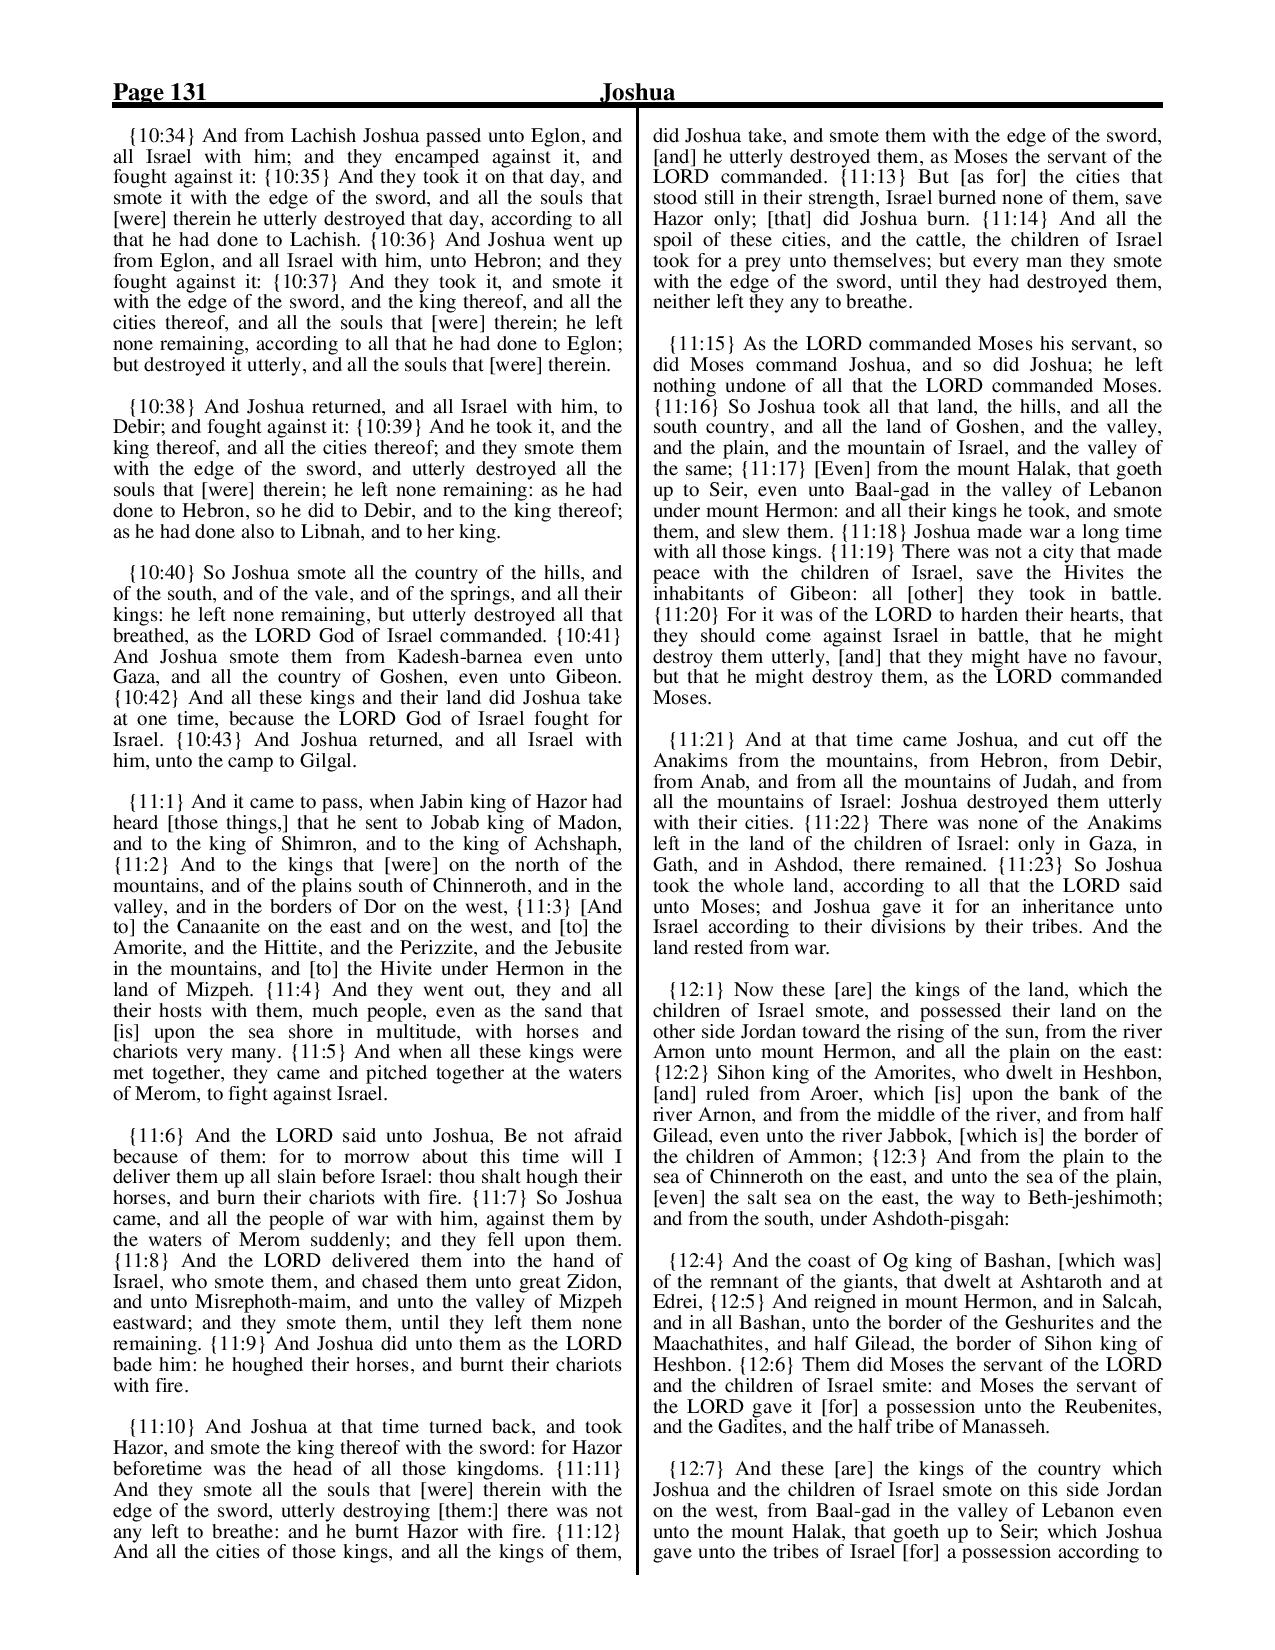 King-James-Bible-KJV-Bible-PDF-page-152